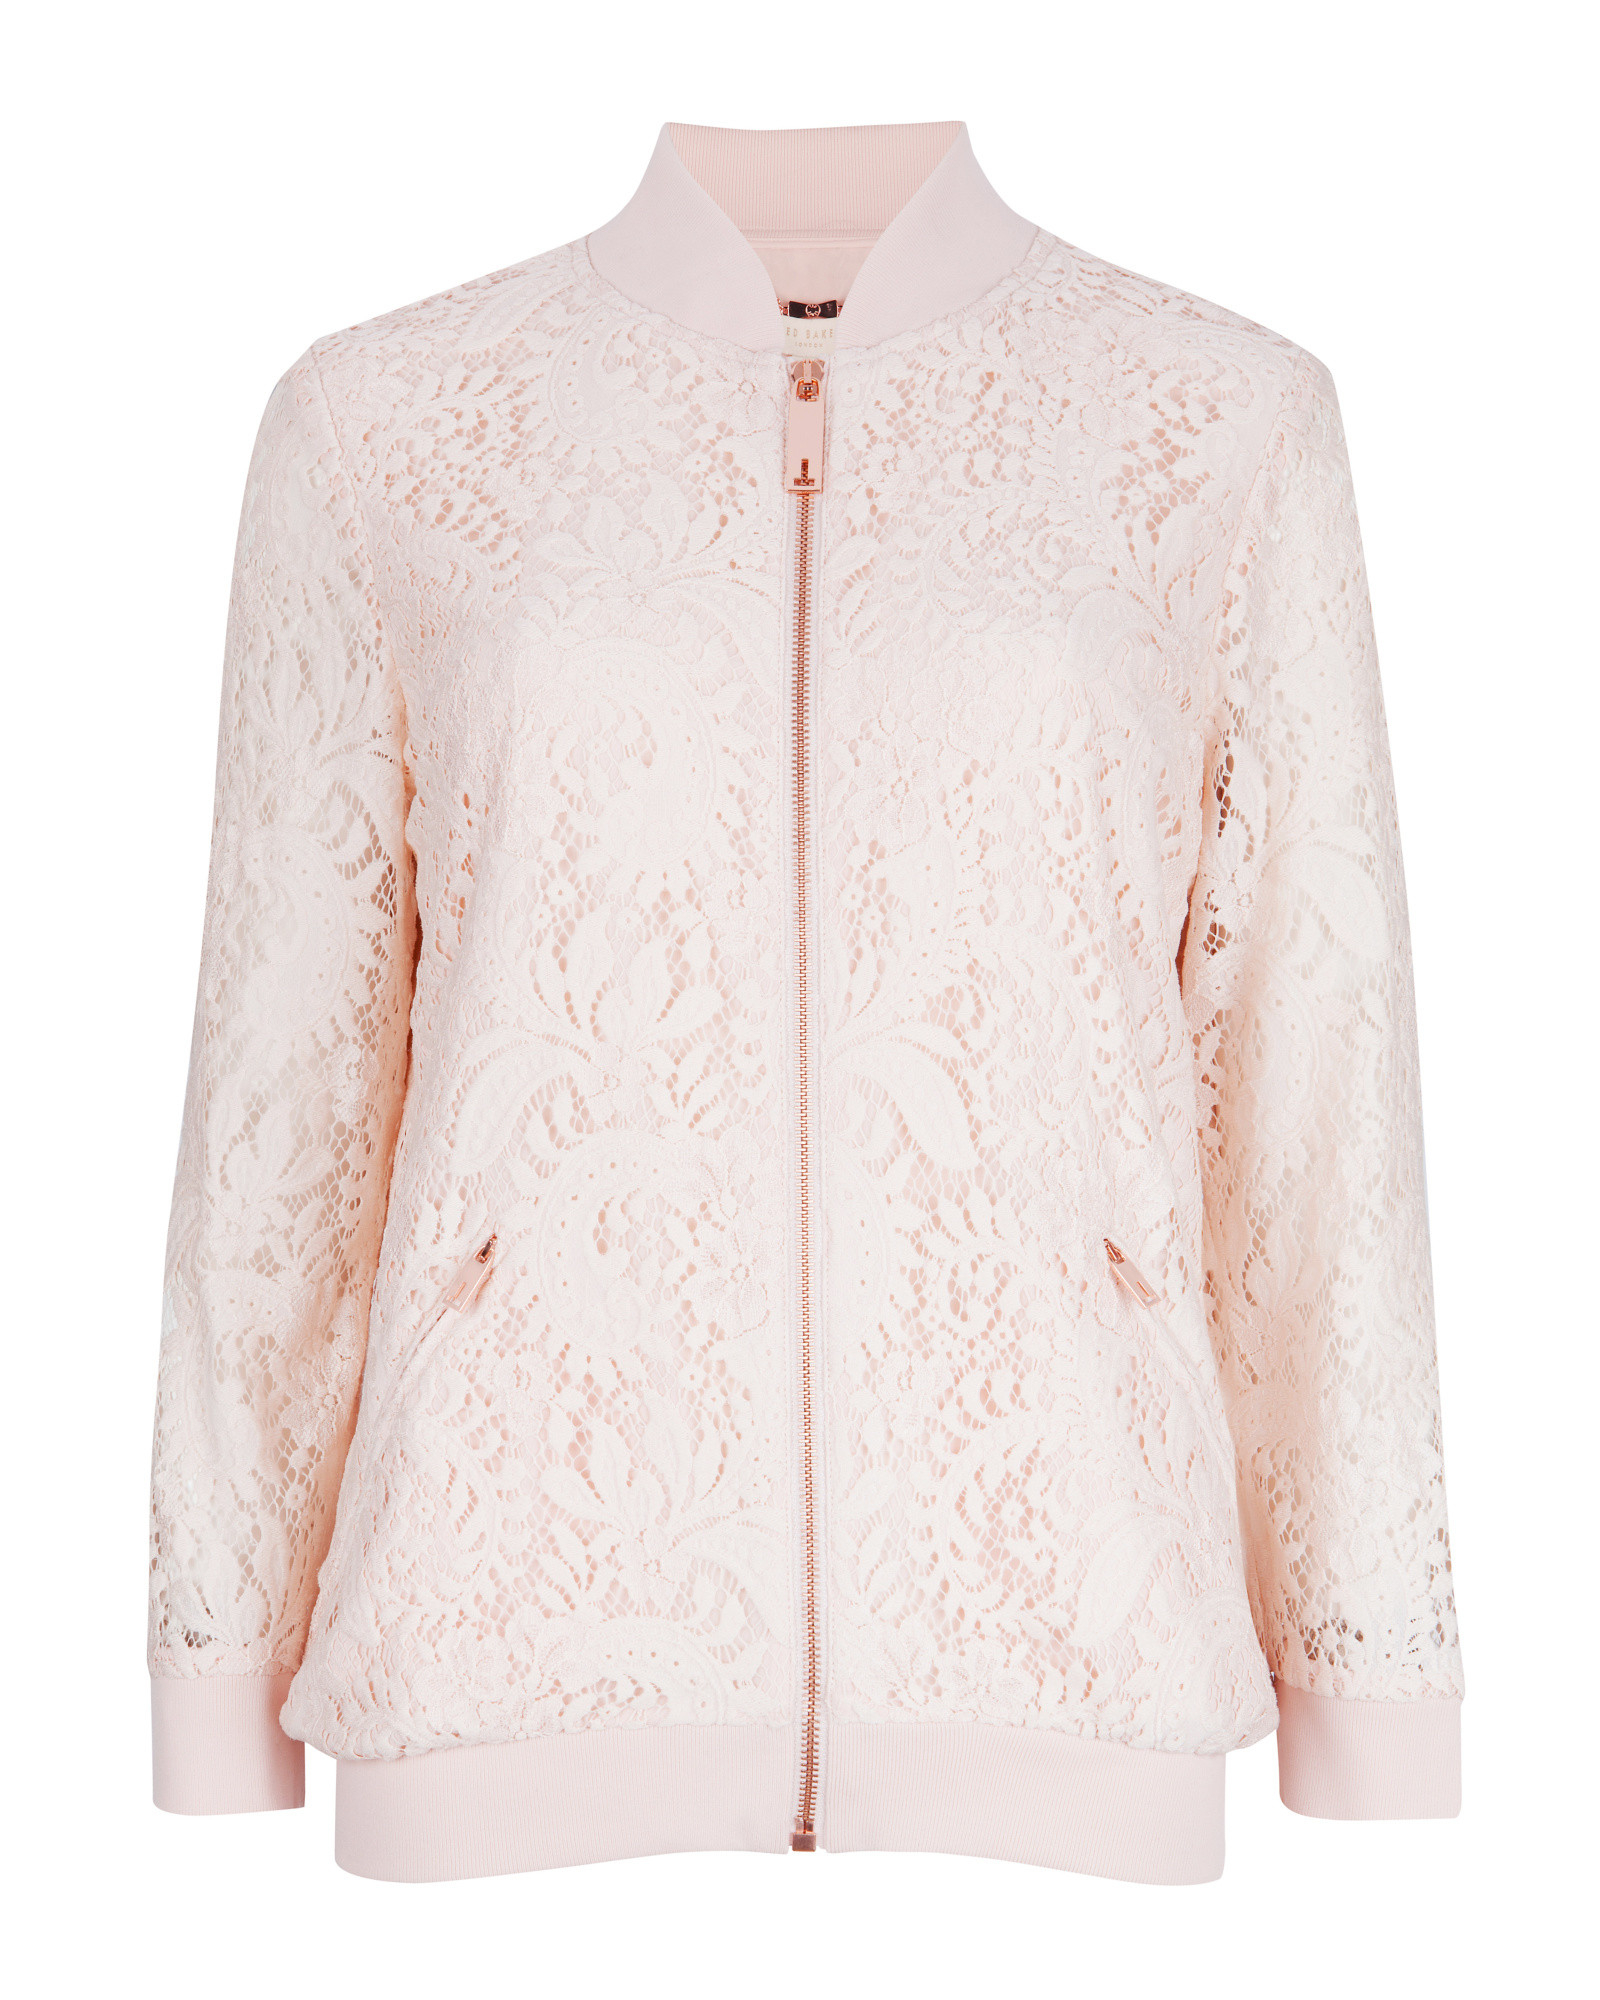 80d3ed1fd Lyst - Ted Baker Zairah Lace Bomber Jacket in Natural